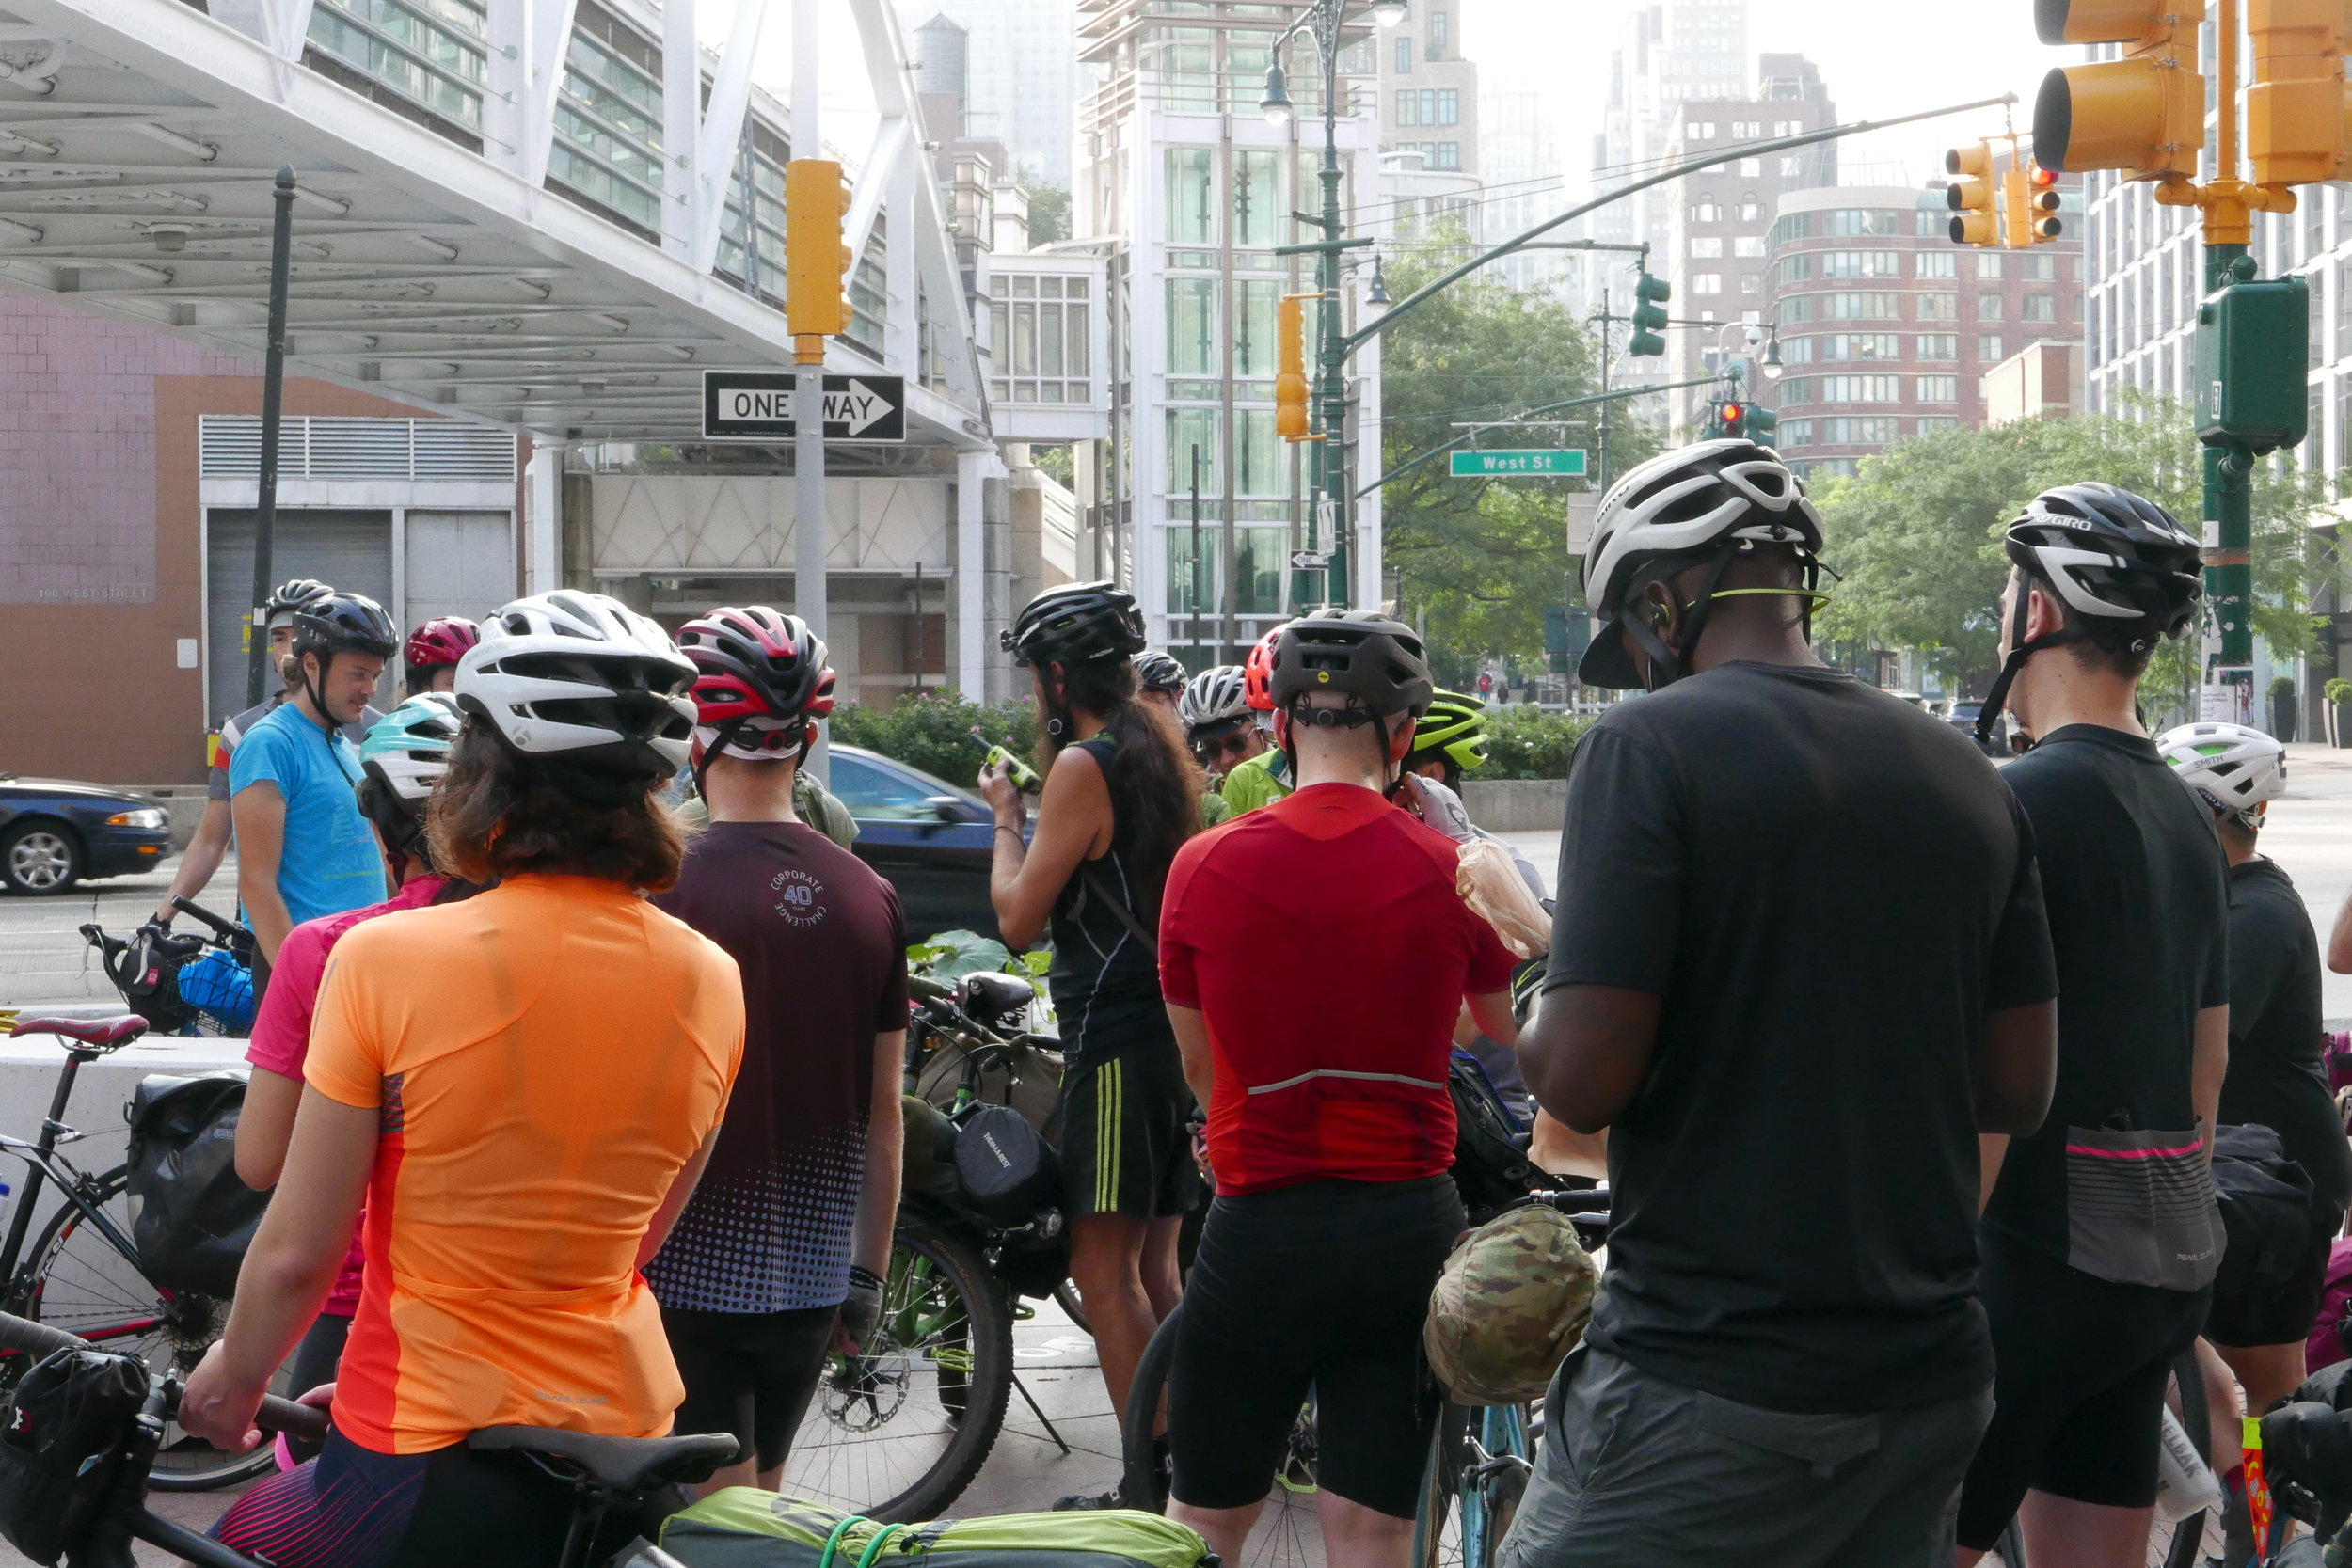 The group meets at the start point in Lower Manhattan, 42 riders in all.